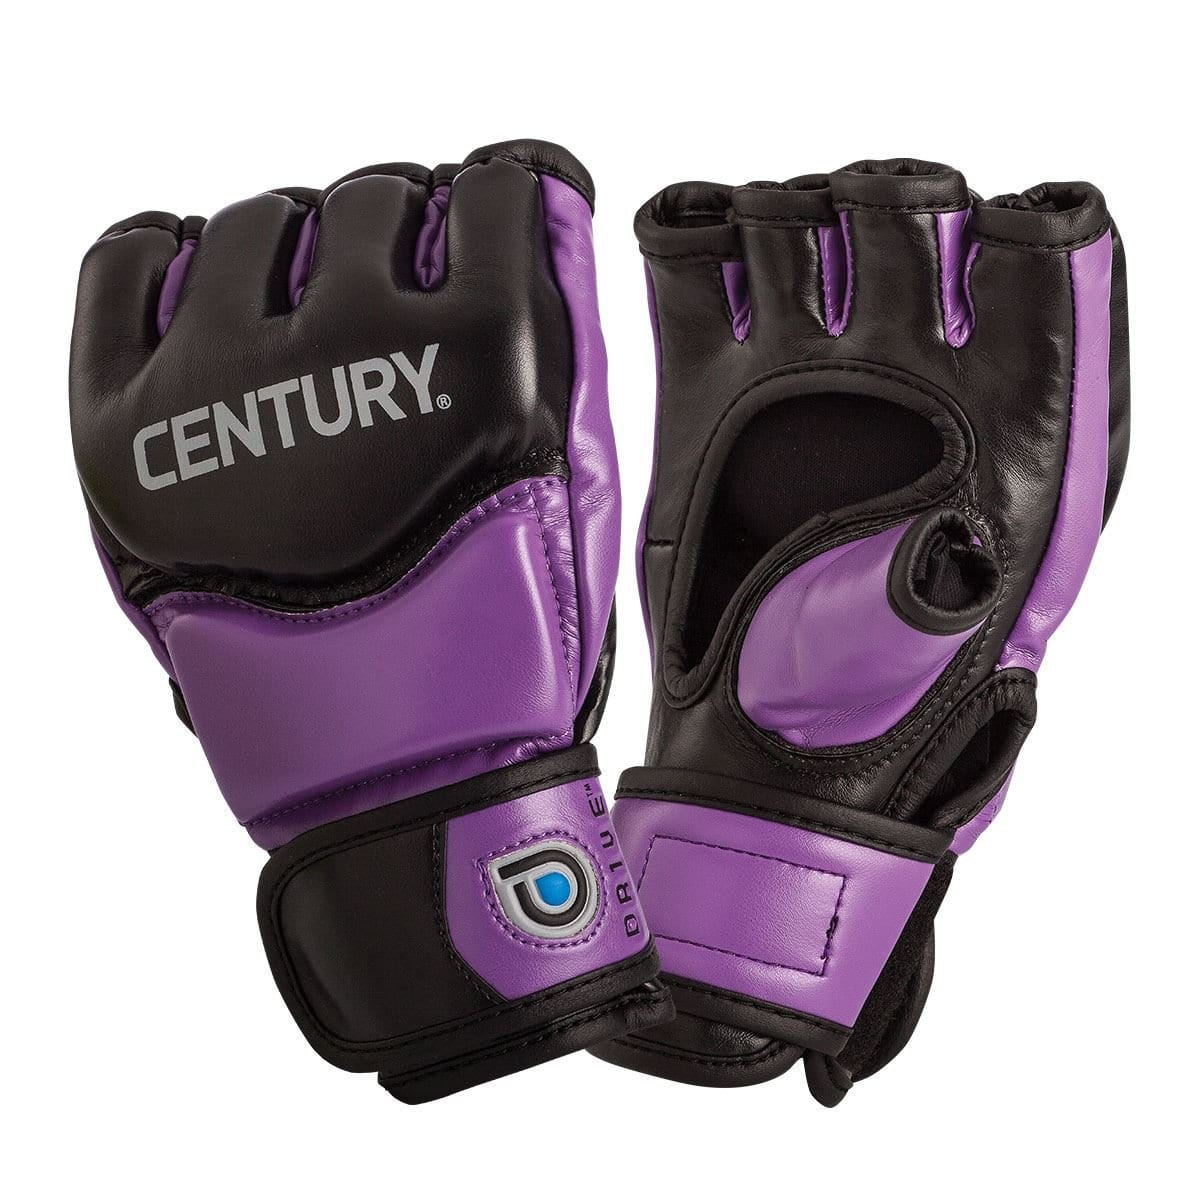 Drive Womens Training Gloves c141016p